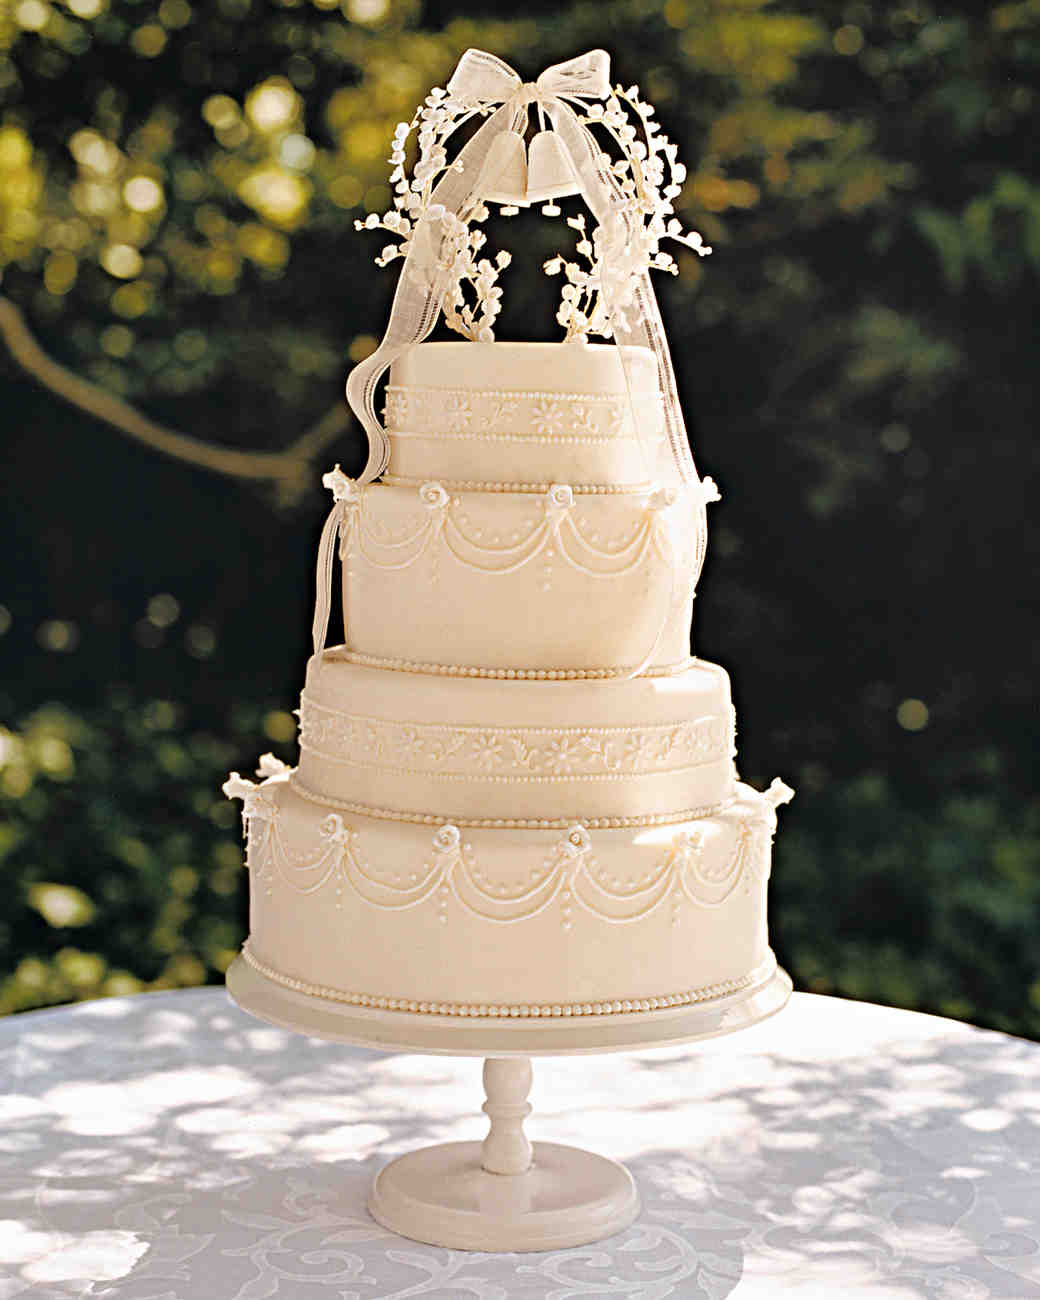 s wedding cake topper 36 of the best wedding cake toppers martha stewart weddings 20682